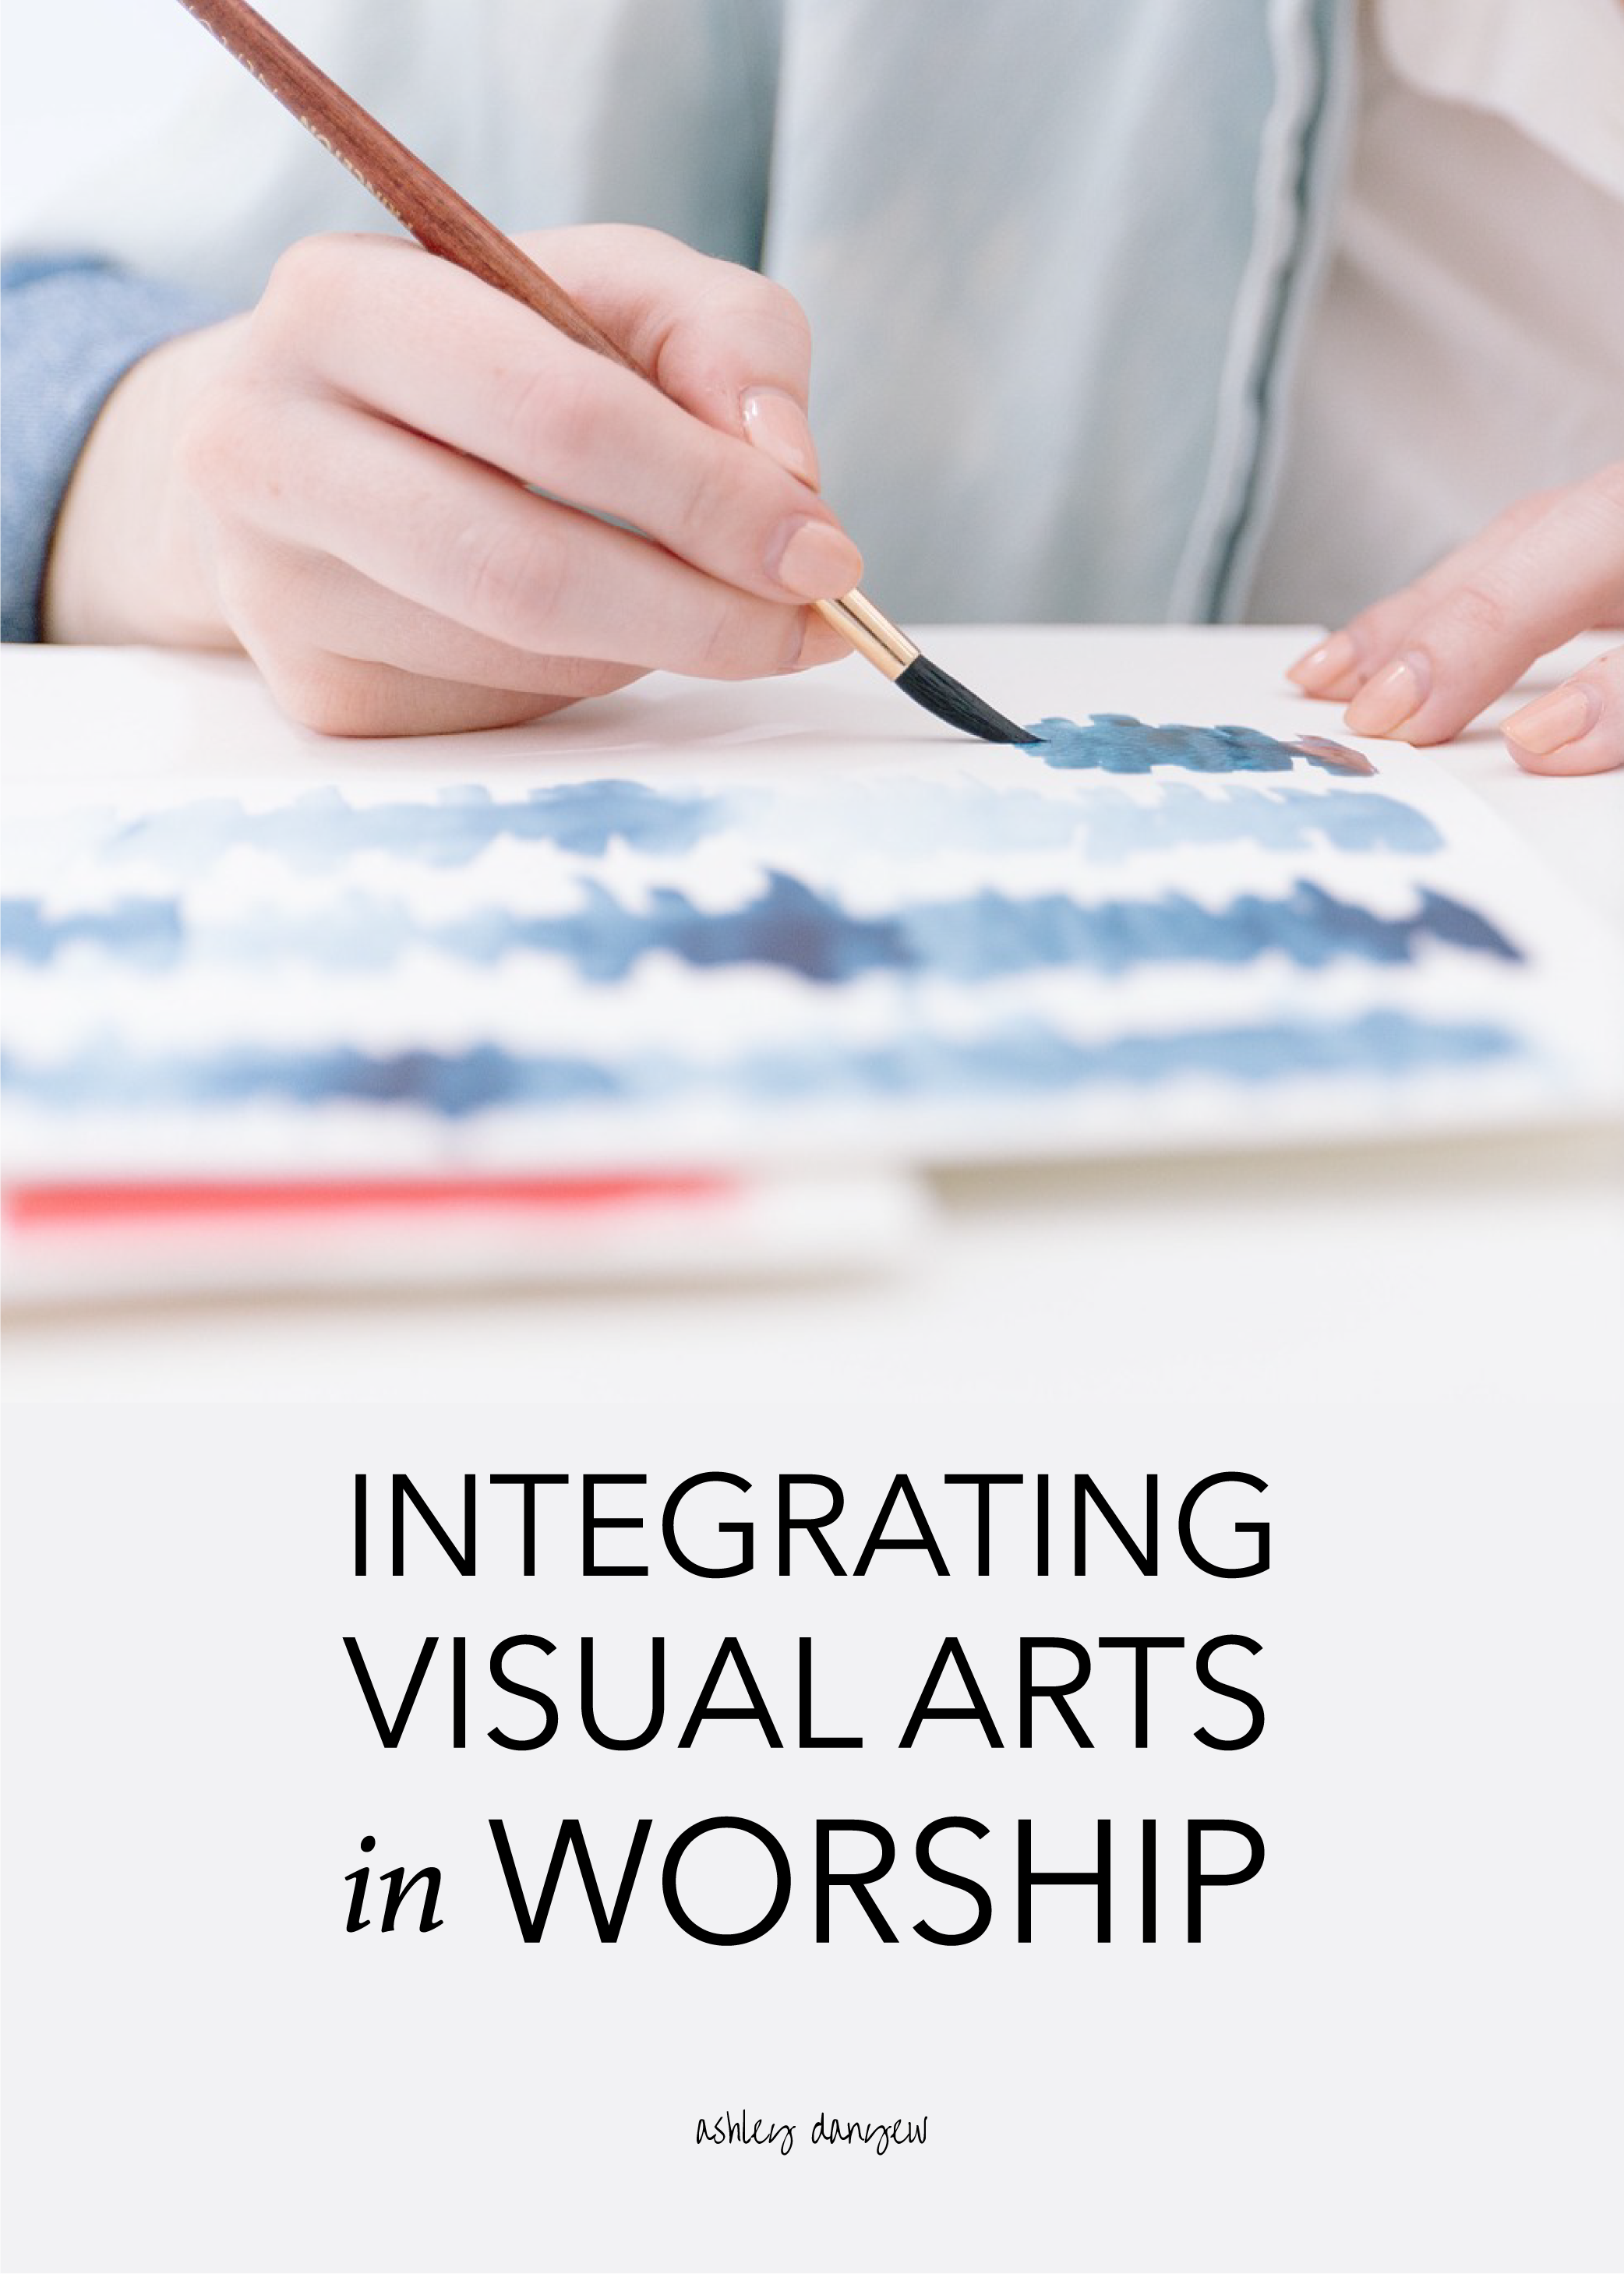 Copy of Integrating Visual Arts in Worship